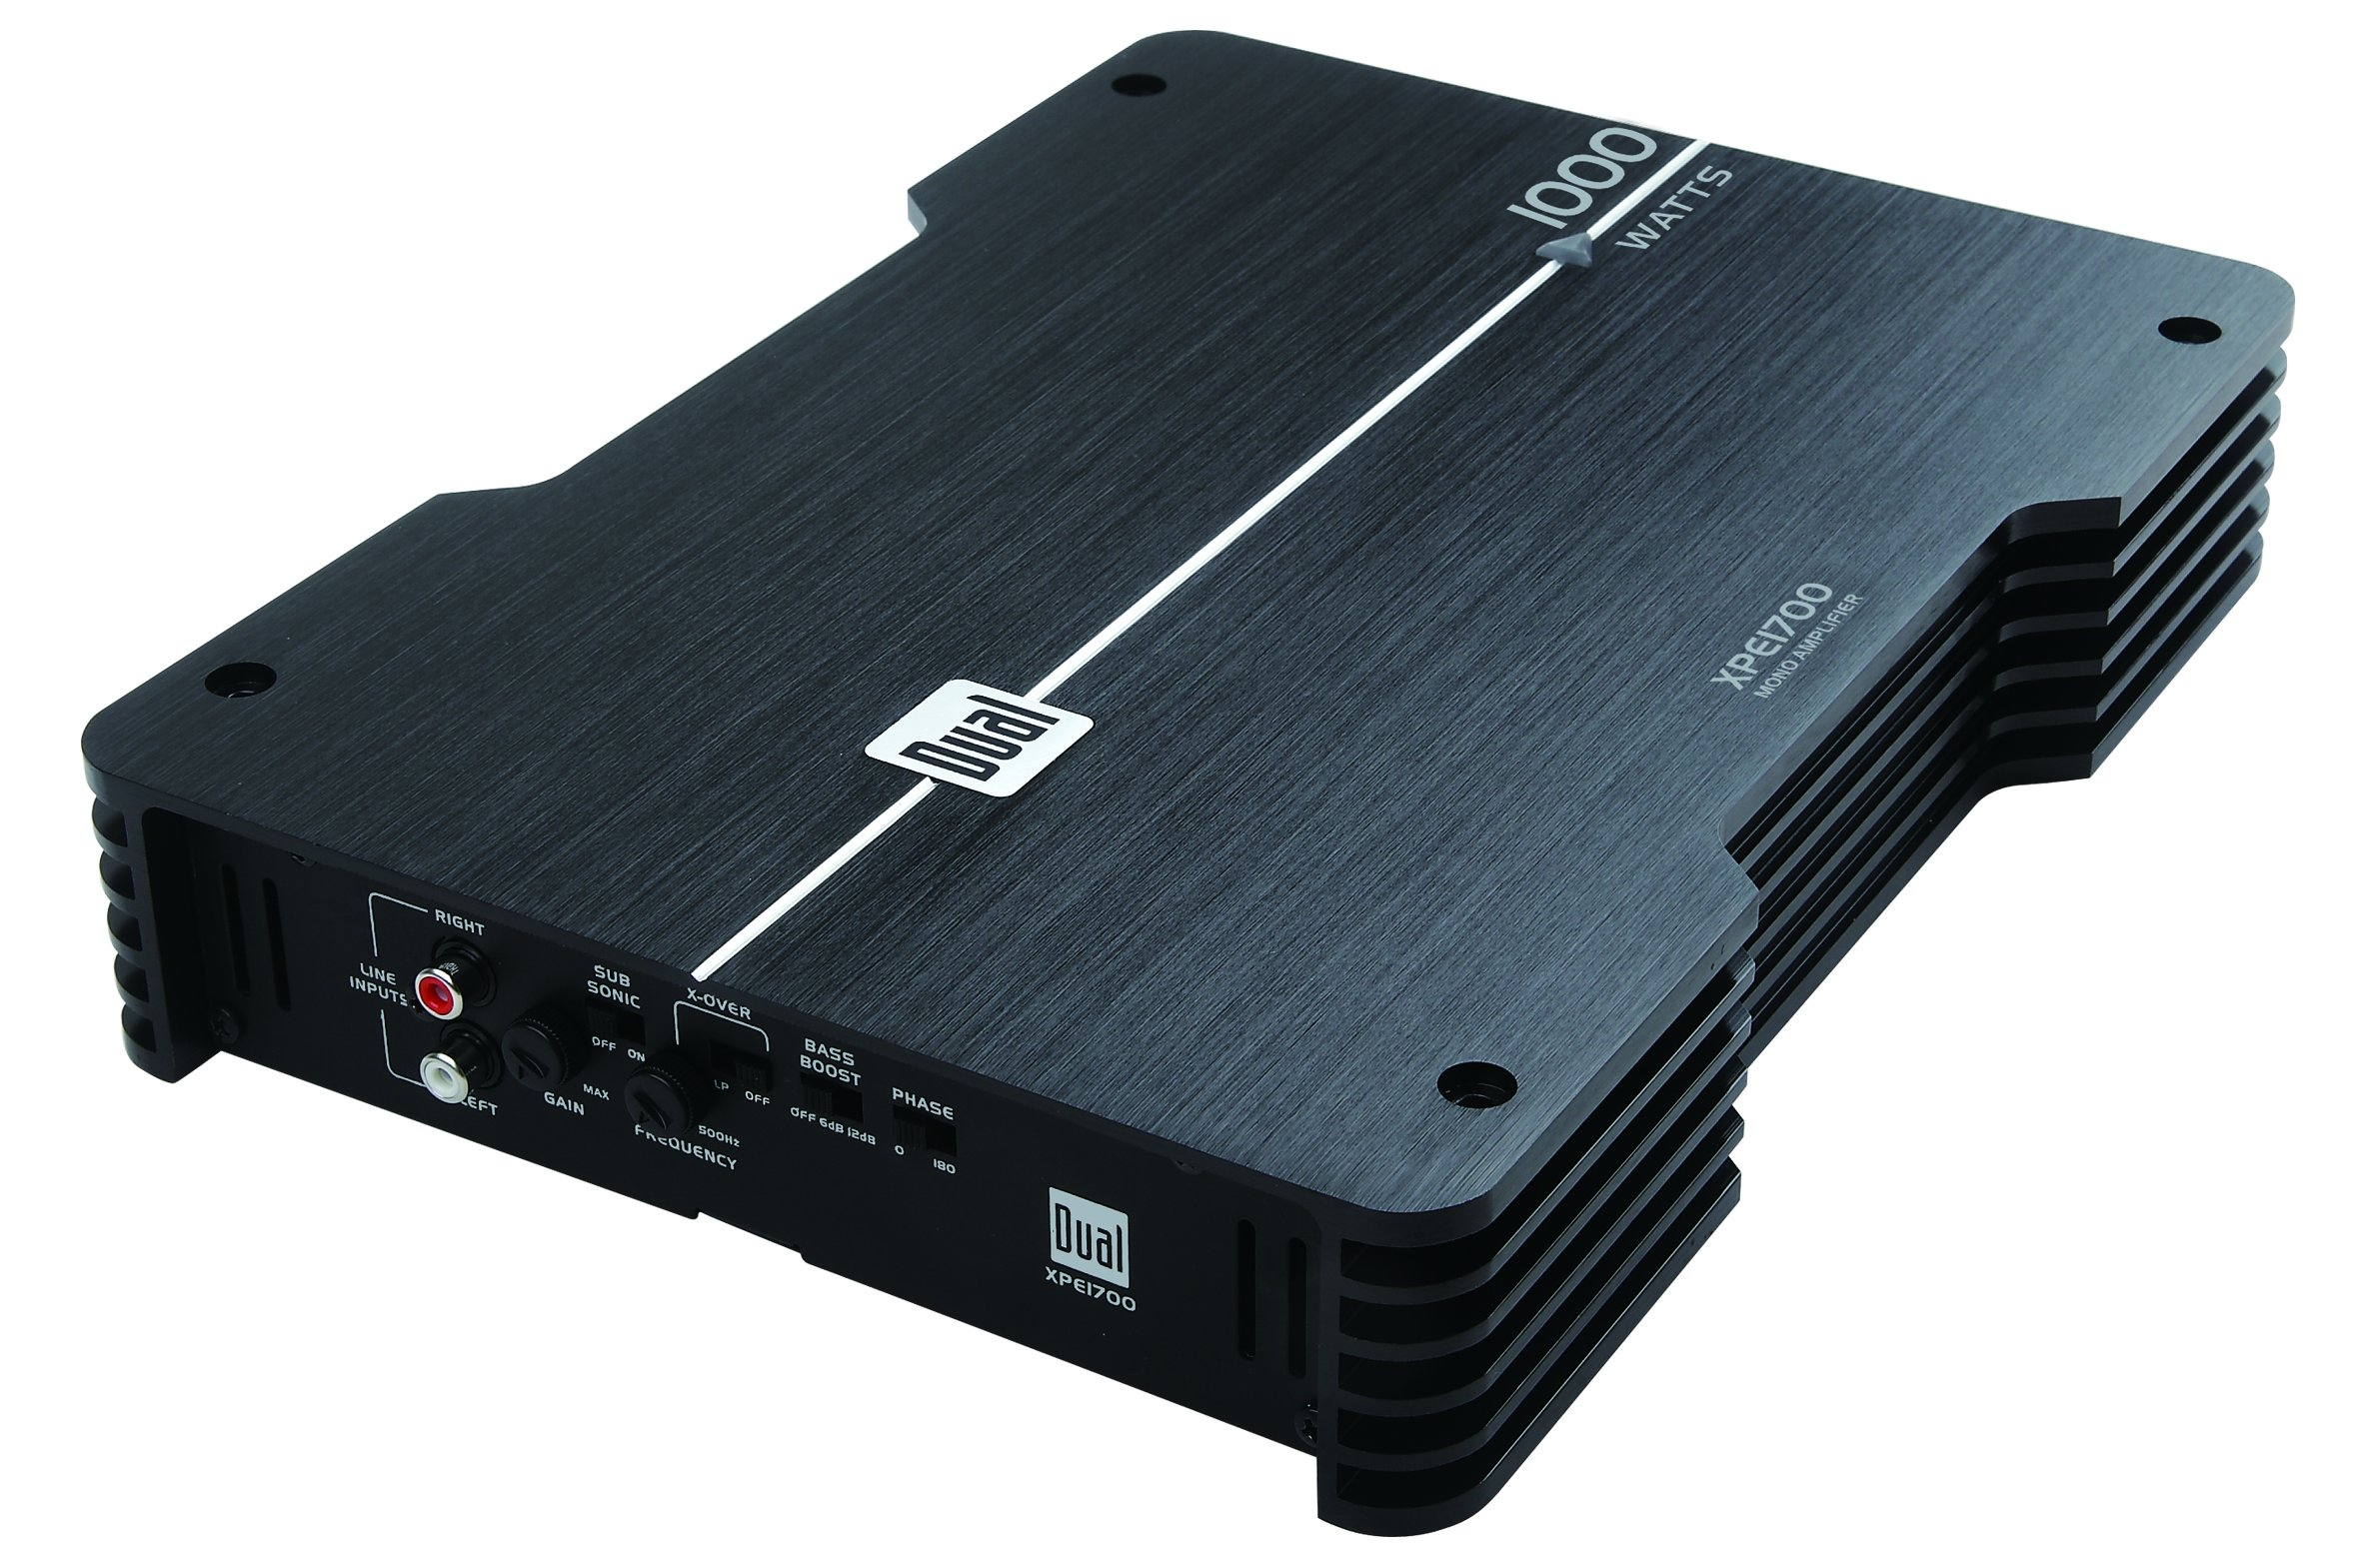 Dual Electronics XPE1700 High Performance MONO Channel Power MOSFET Class A/B Car Amplifier with 1000-Watts Dynamic Peak Power by Dual (Image #2)